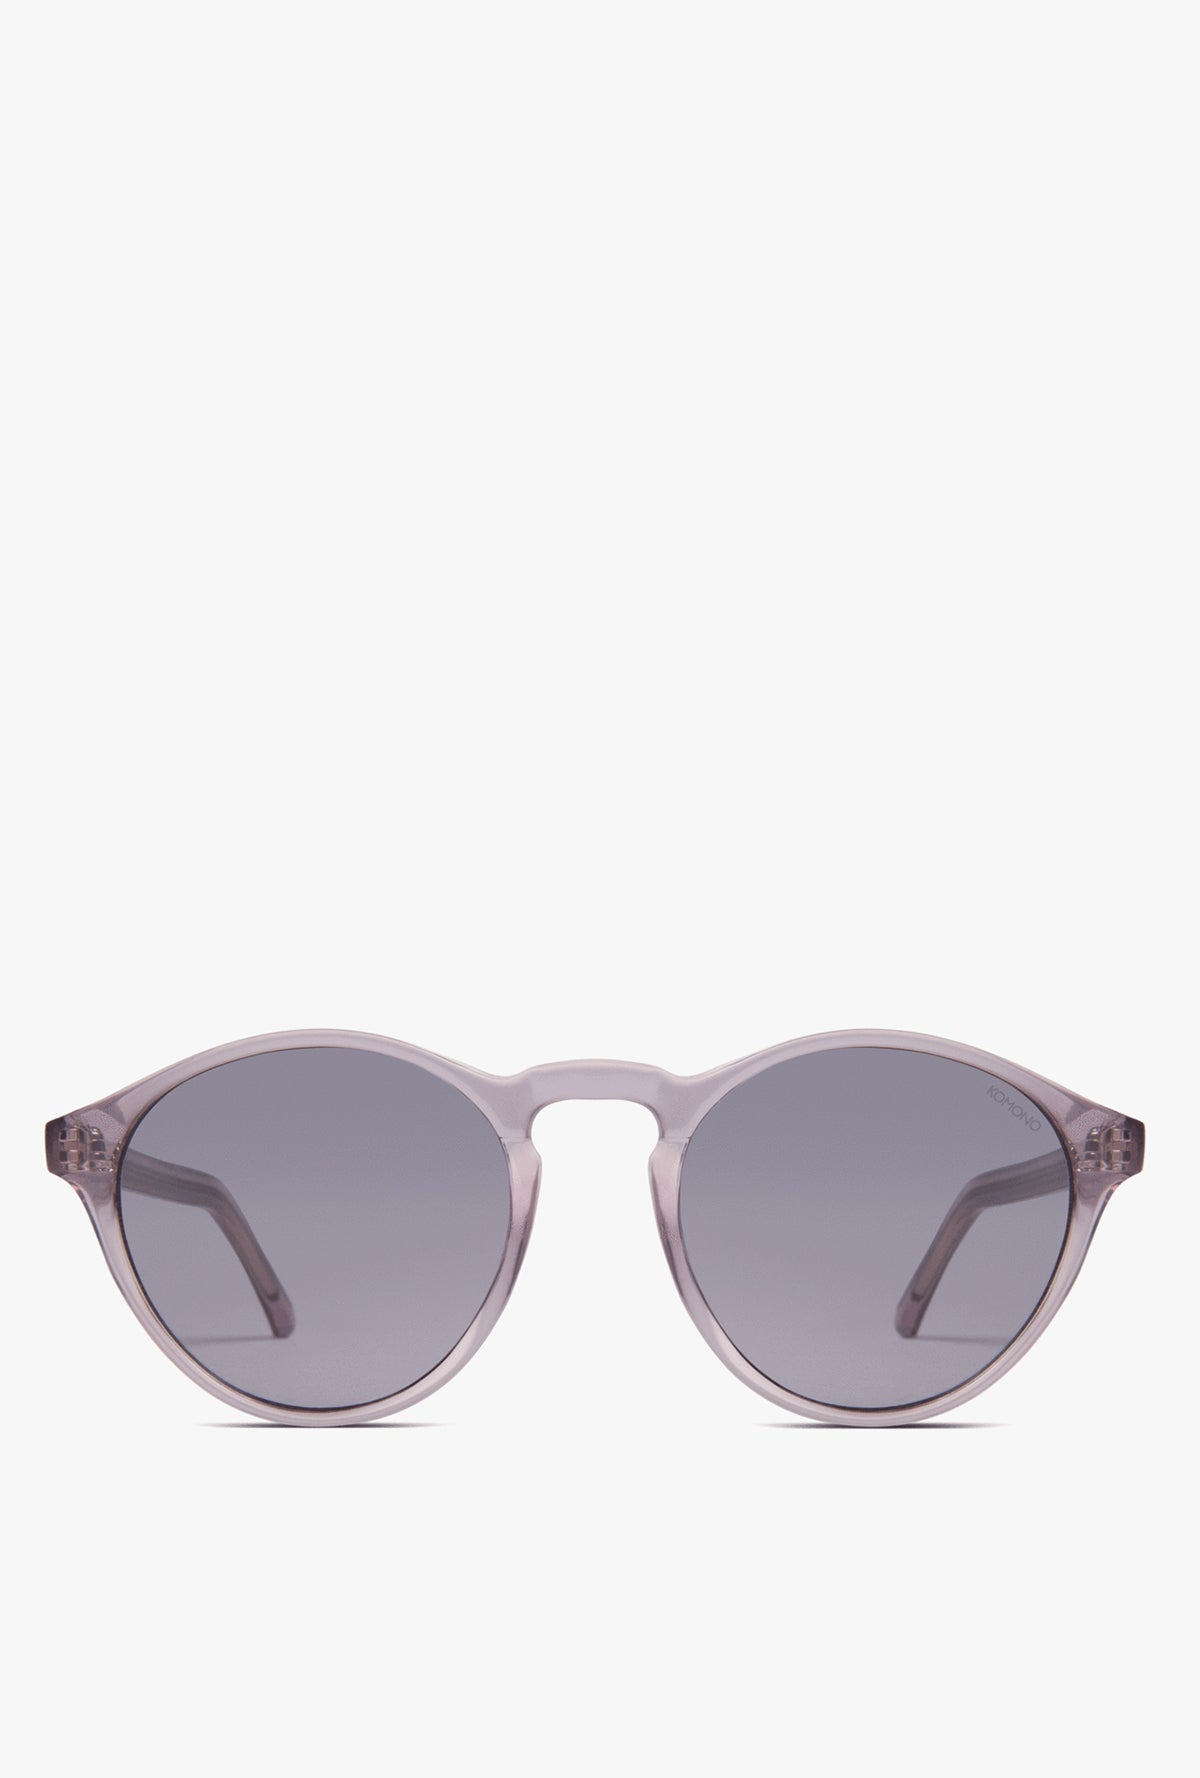 Devon Sunglasses - Lavender